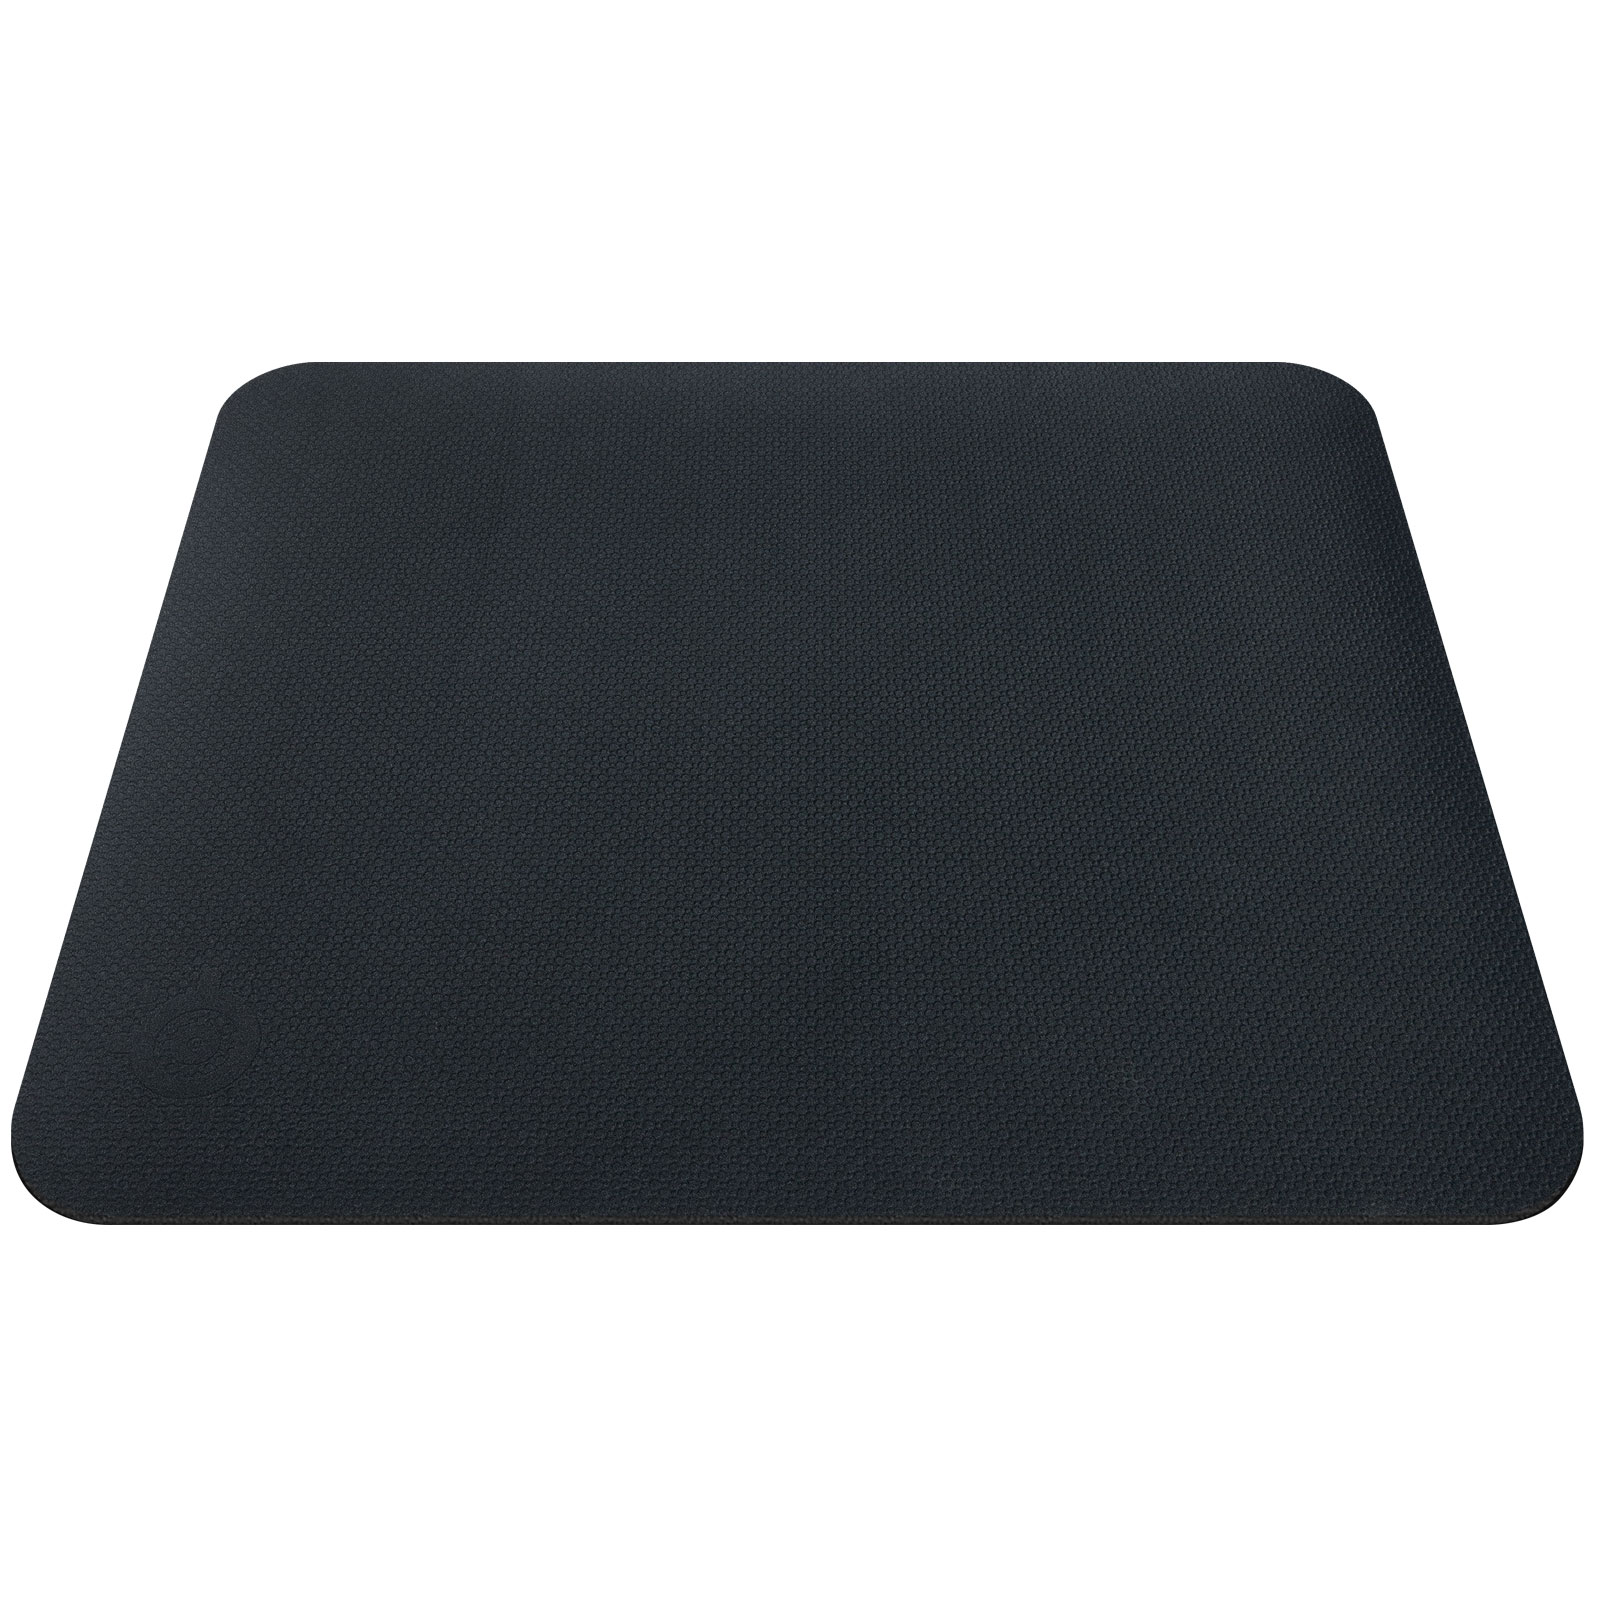 Steelseries dex tapis de souris steelseries sur - Steelseries tapis de souris ...